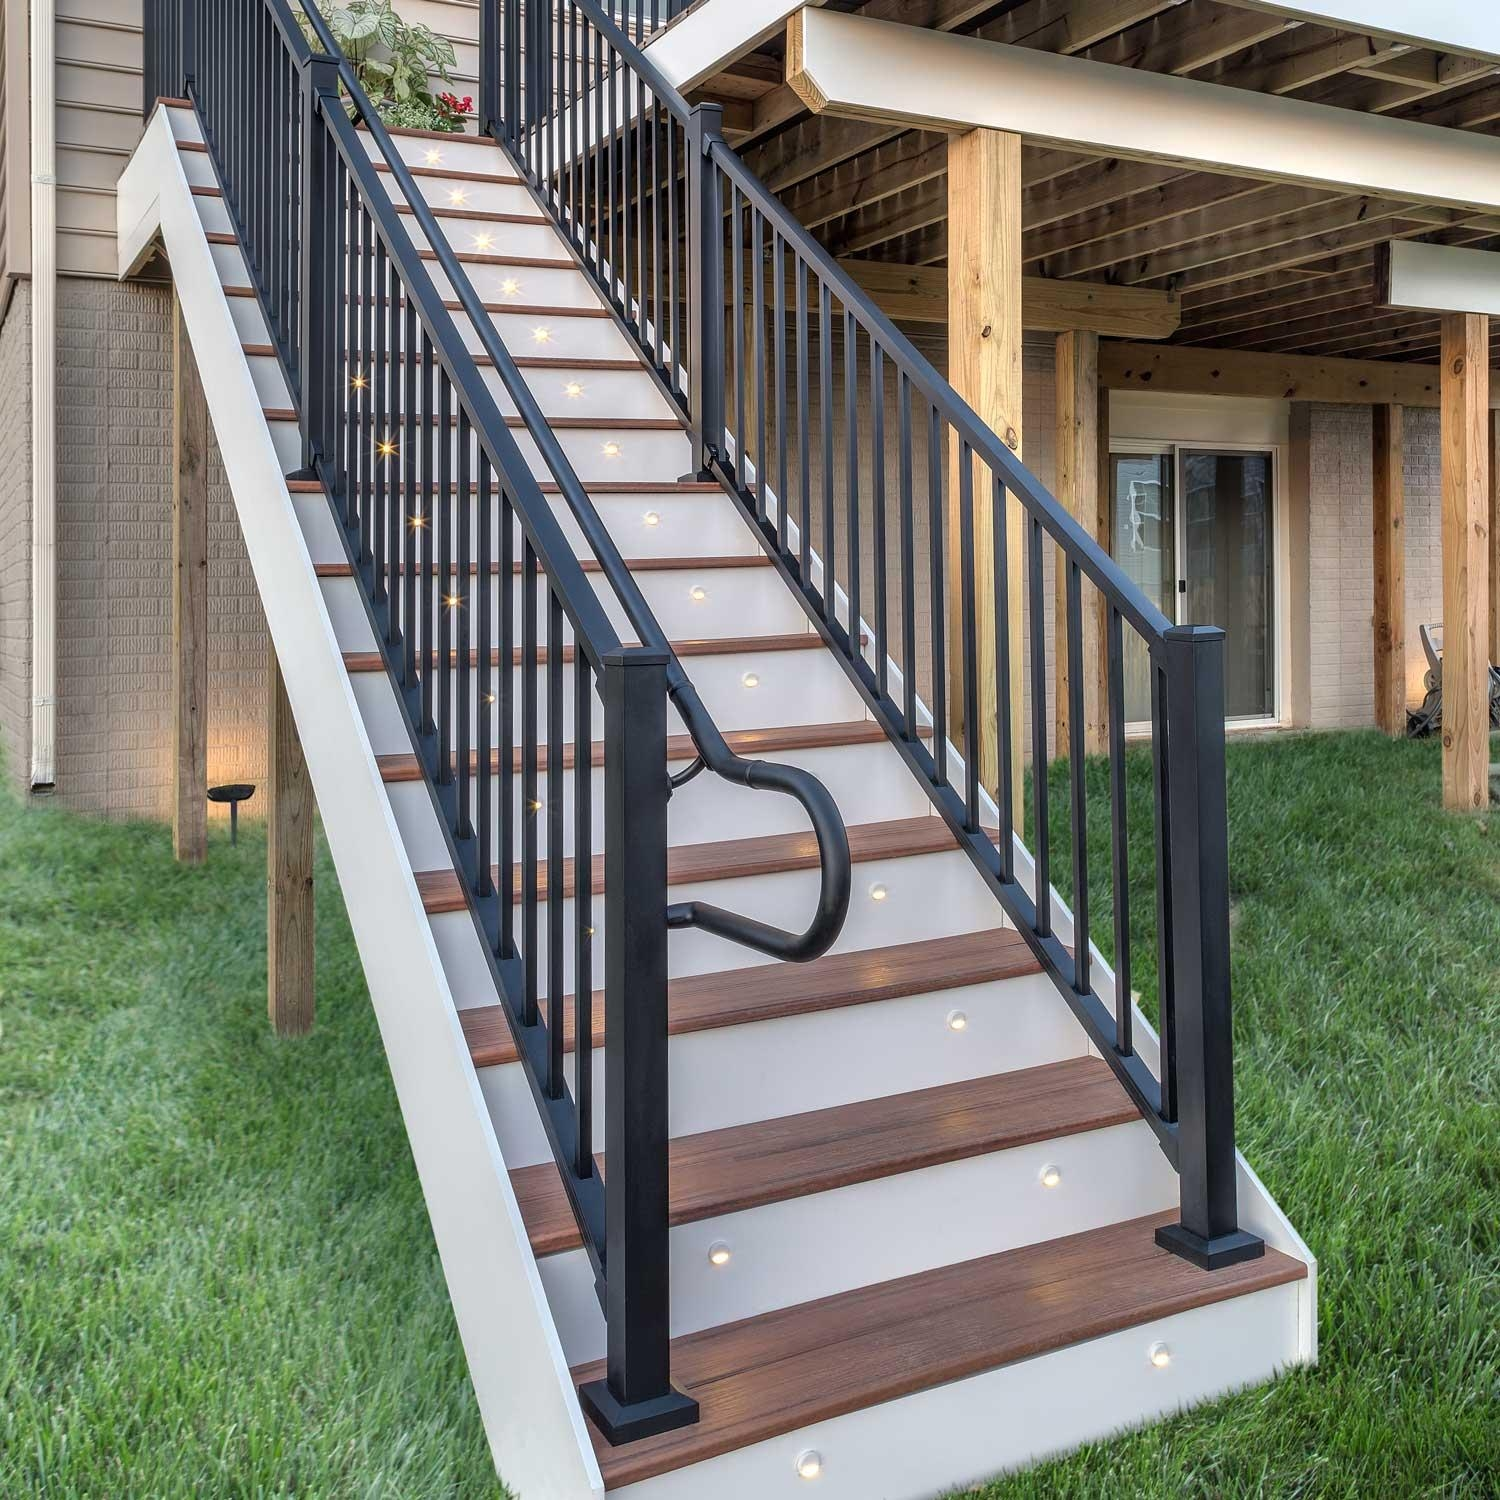 Signature 2 1 2 Aluminum Post W Cap And Skirt For Stairs 53 Trex   Aluminum Handrails For Concrete Steps   Stair   Wood   Front Porch   Back Patio   Mobile Home